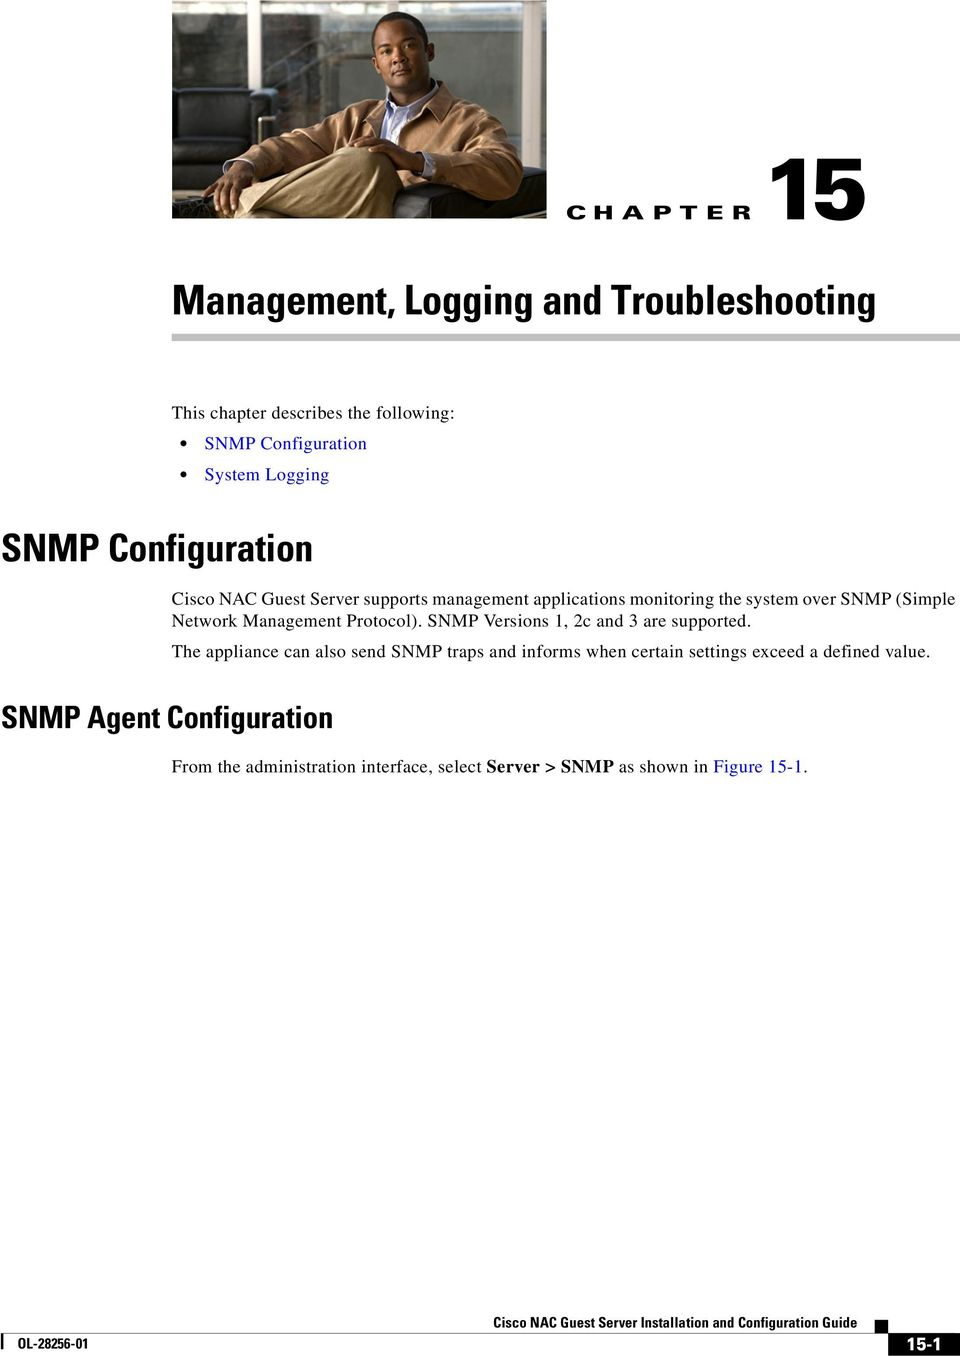 SNMP Versions 1, 2c and 3 are supported.